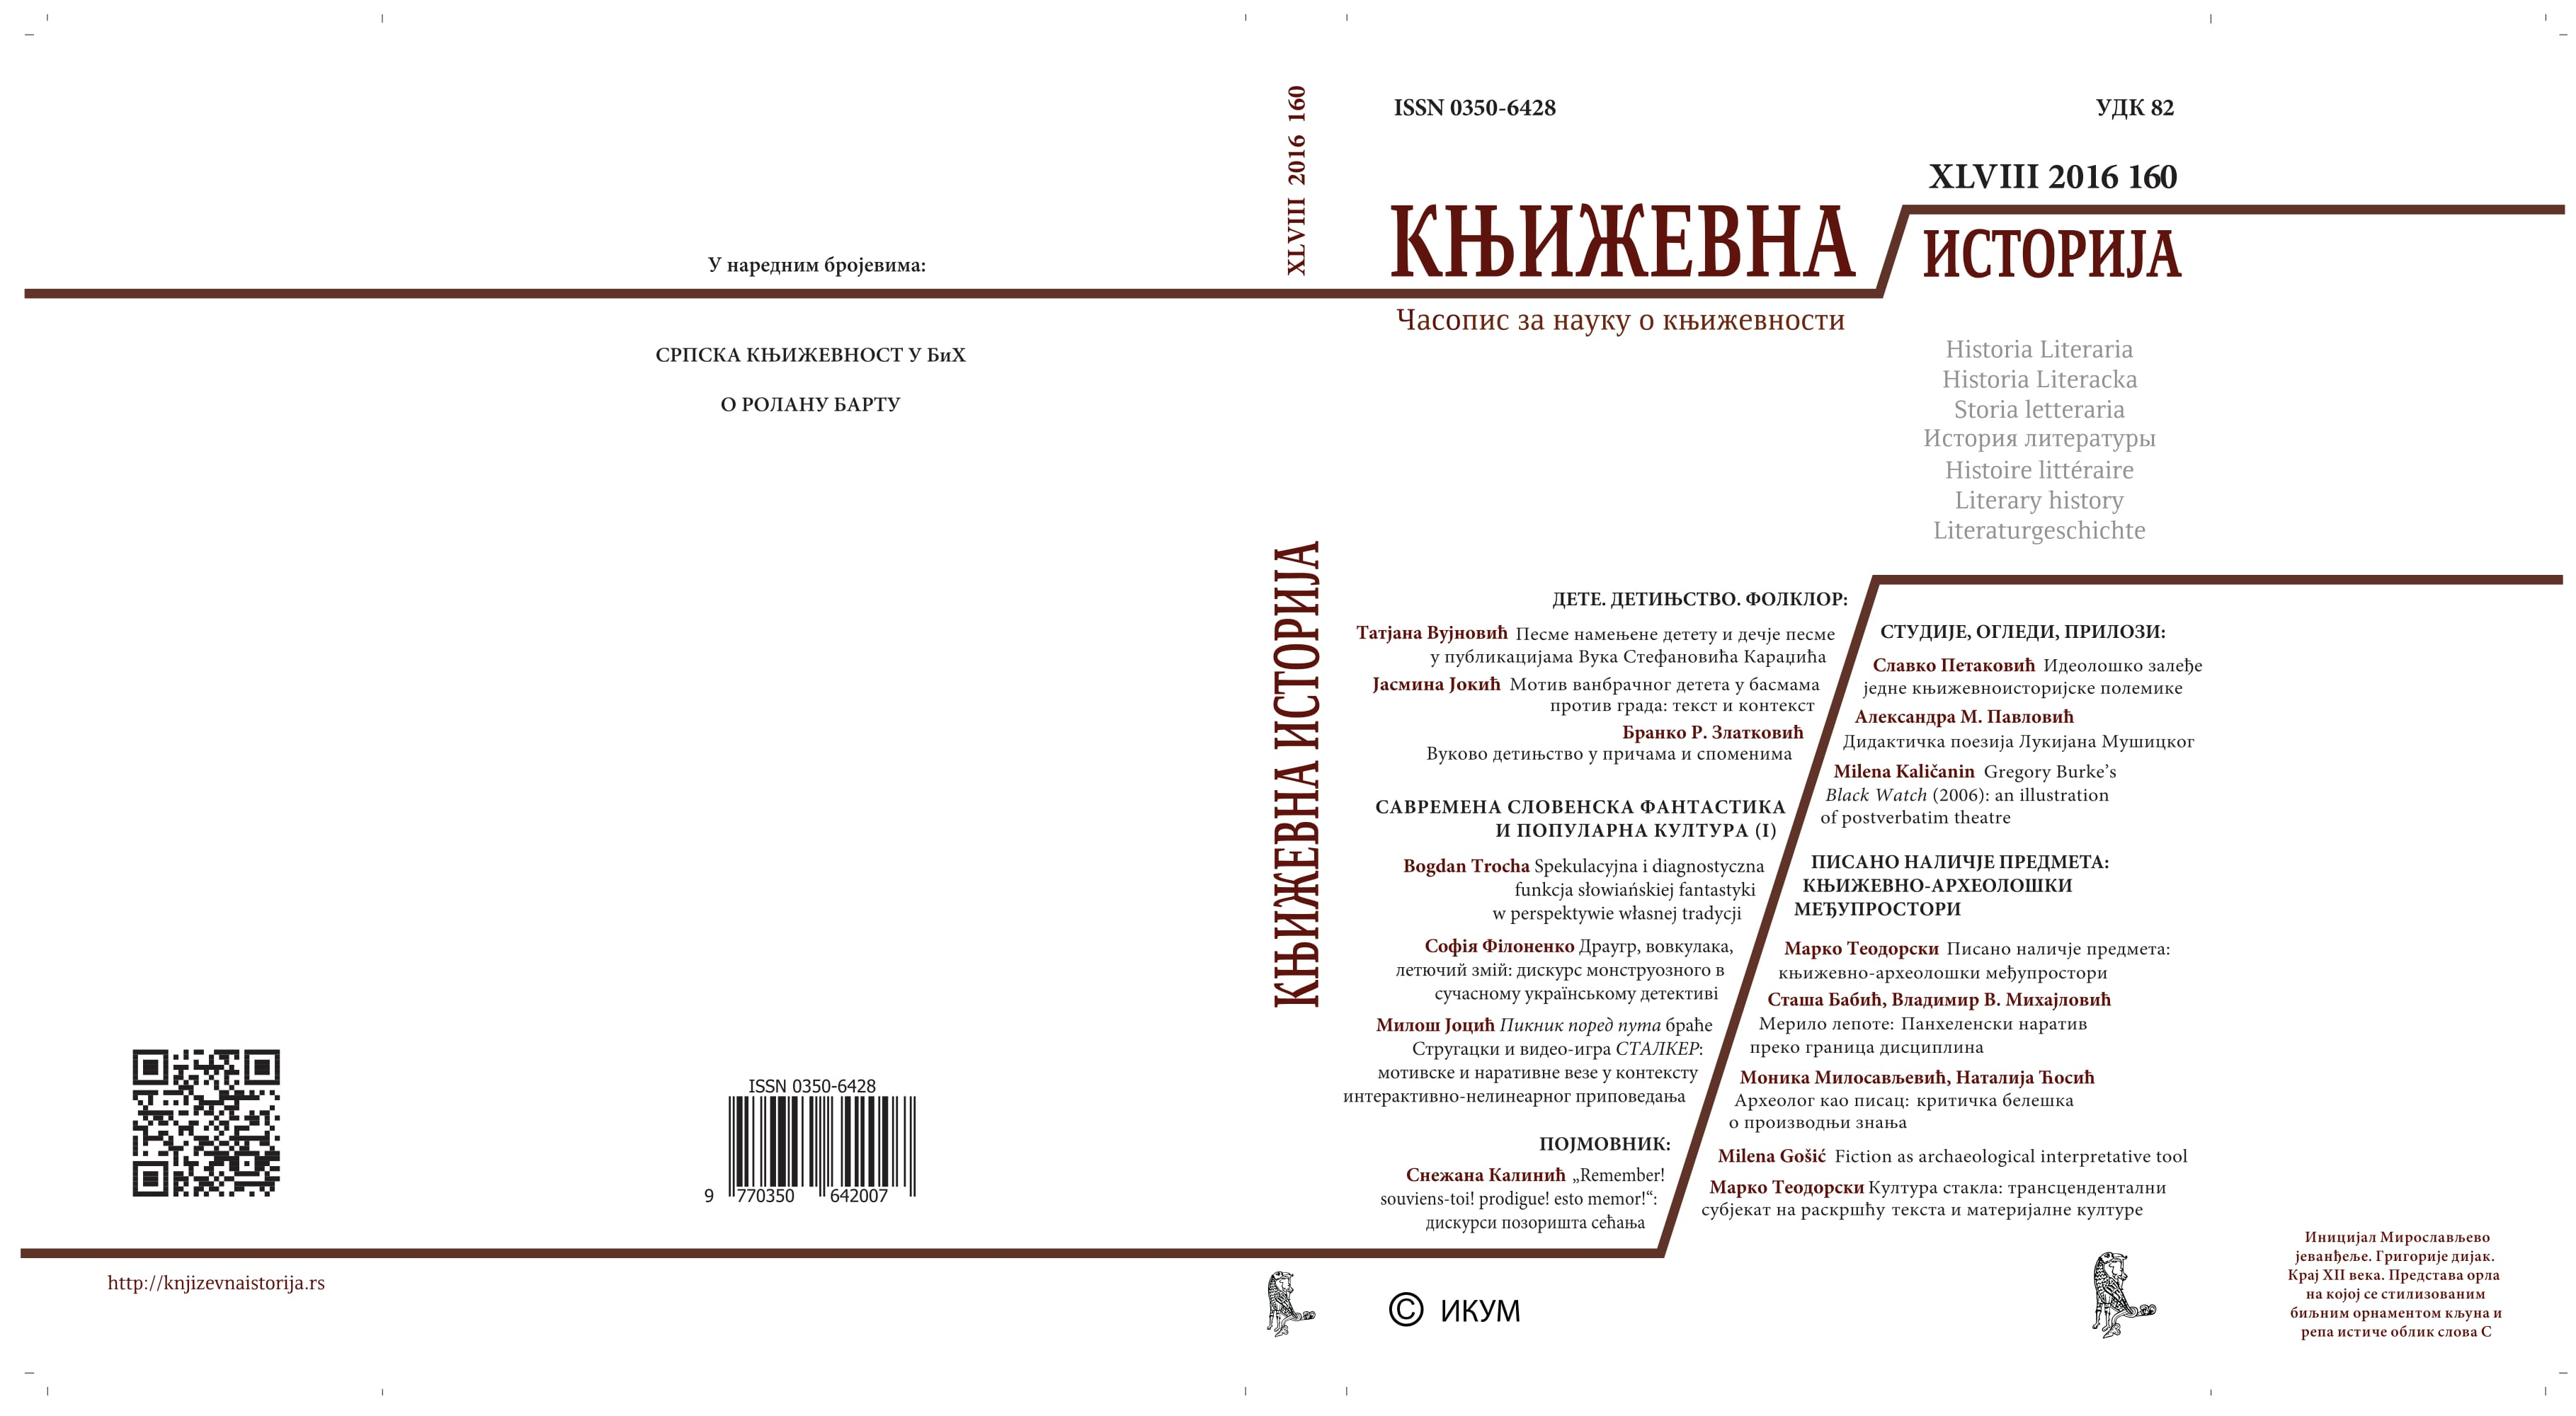 The development of Serbian drama literature of the 18th and 19th centuries Cover Image